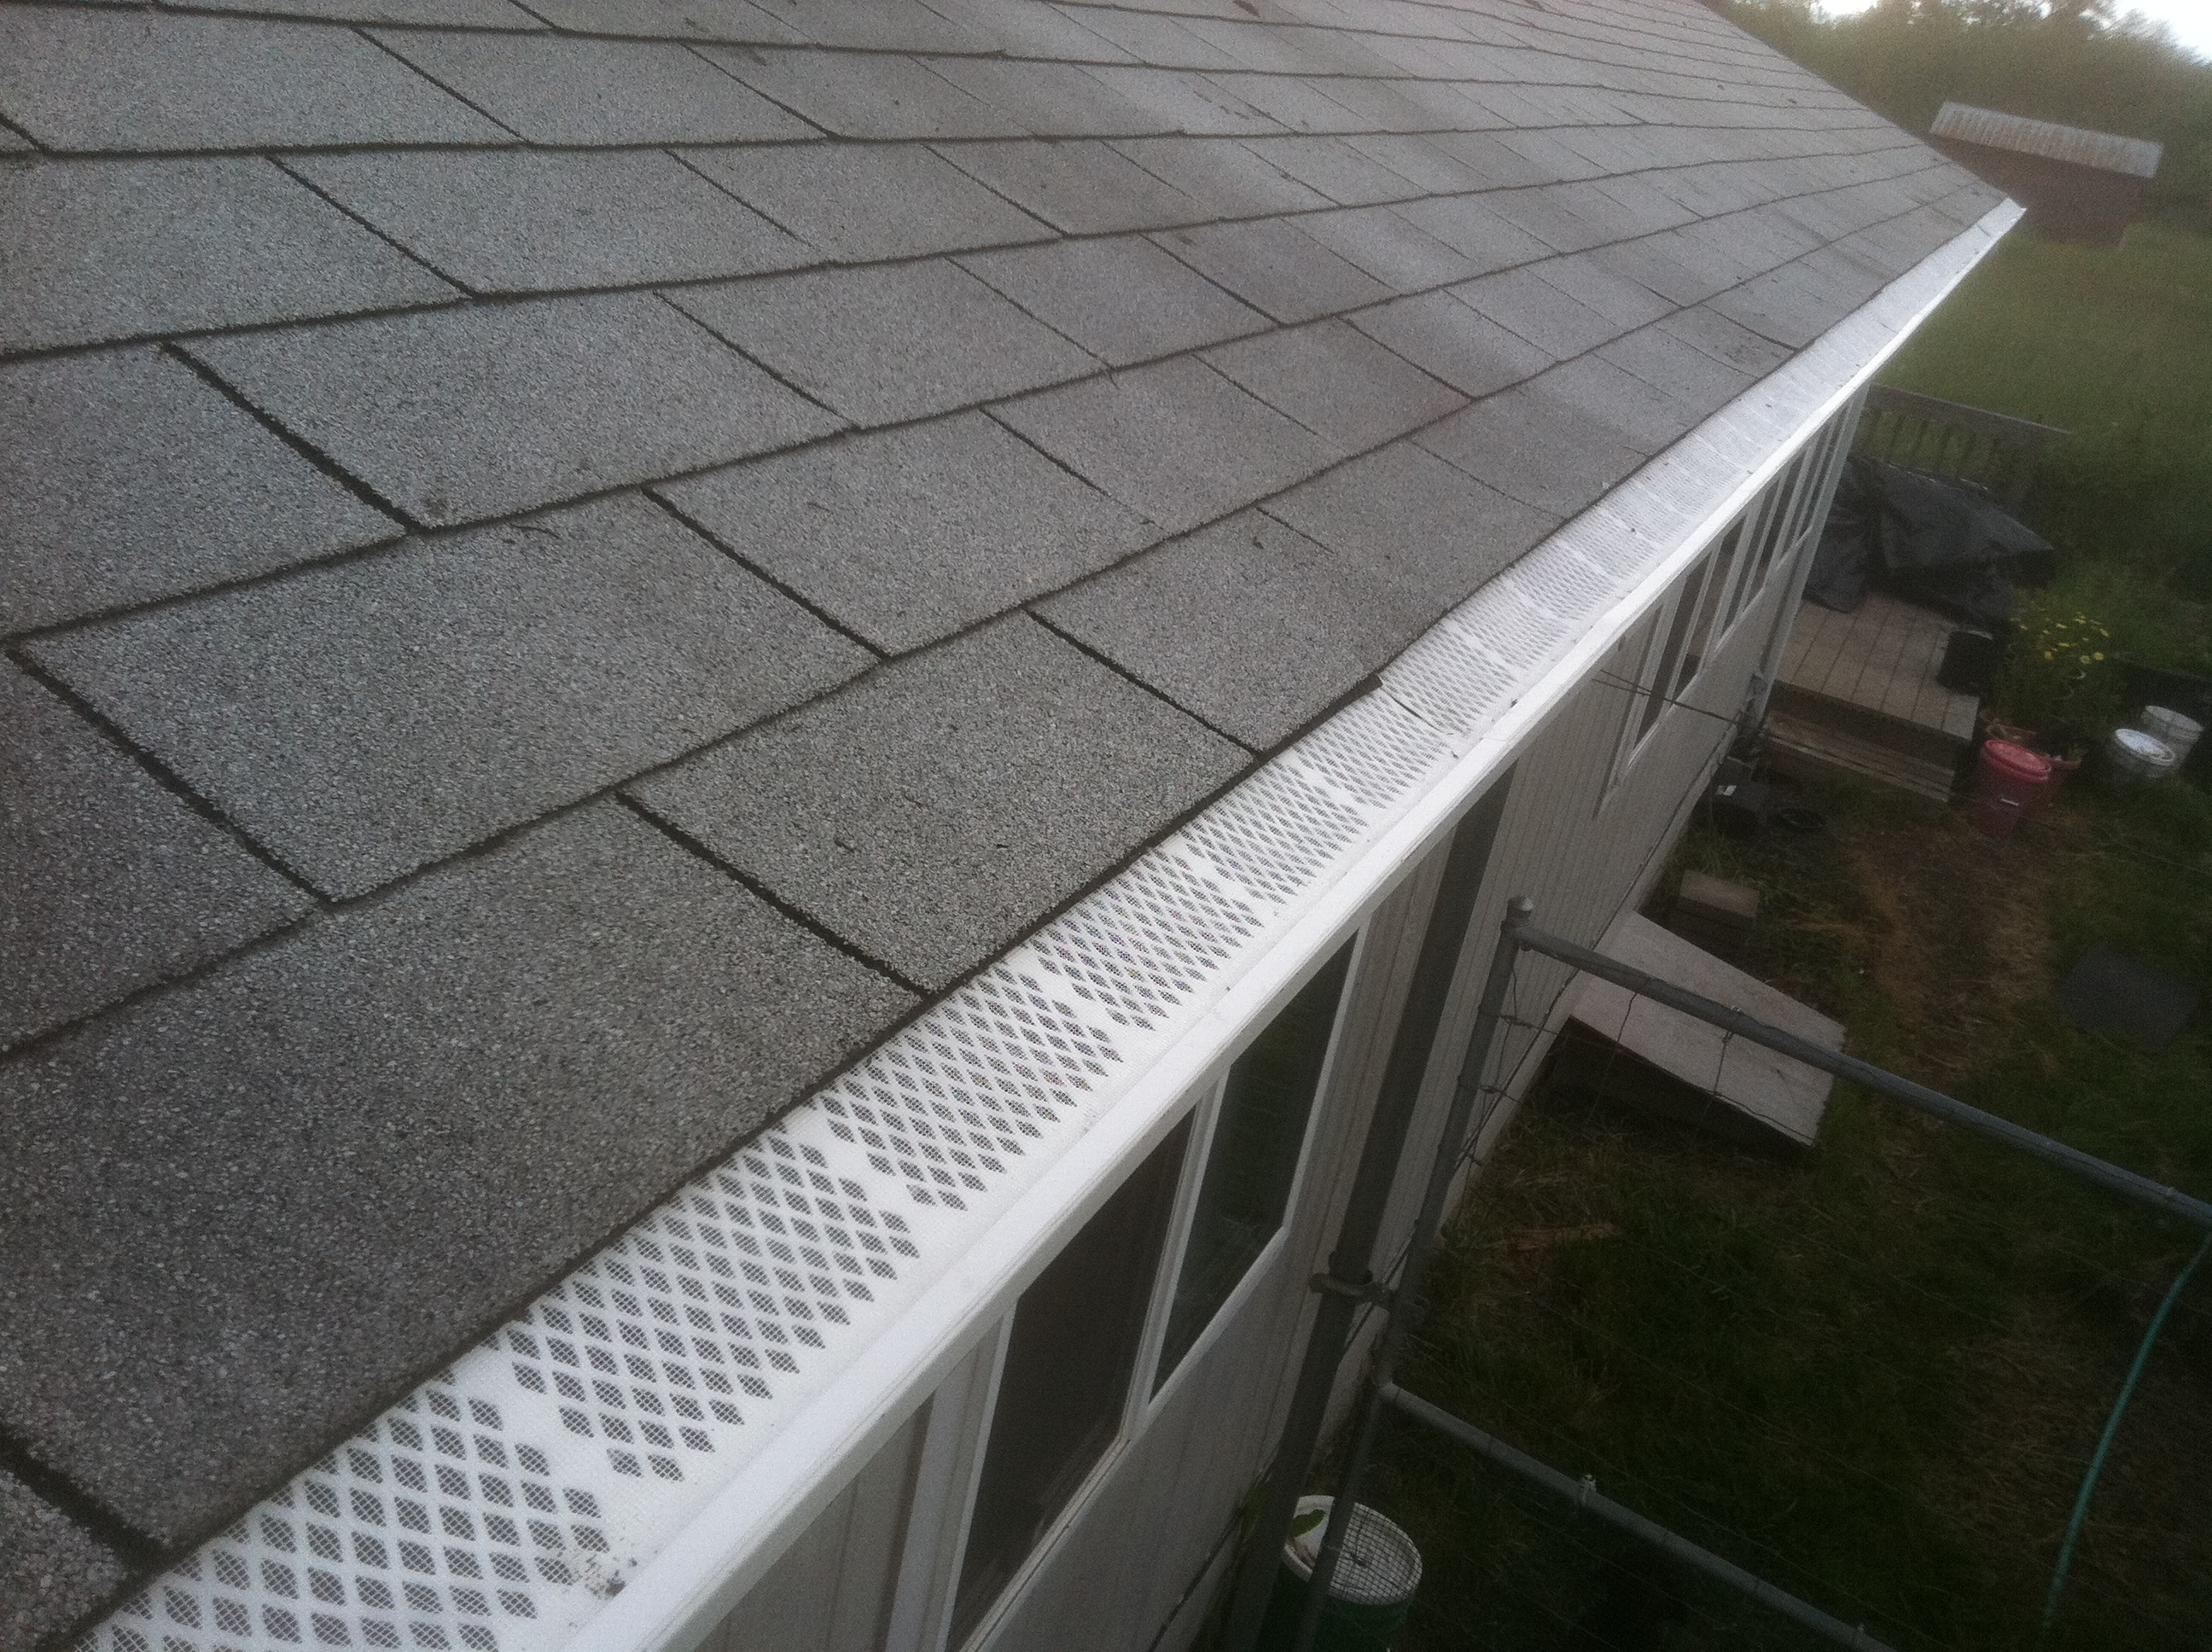 Rain Gutter Cleaning - After